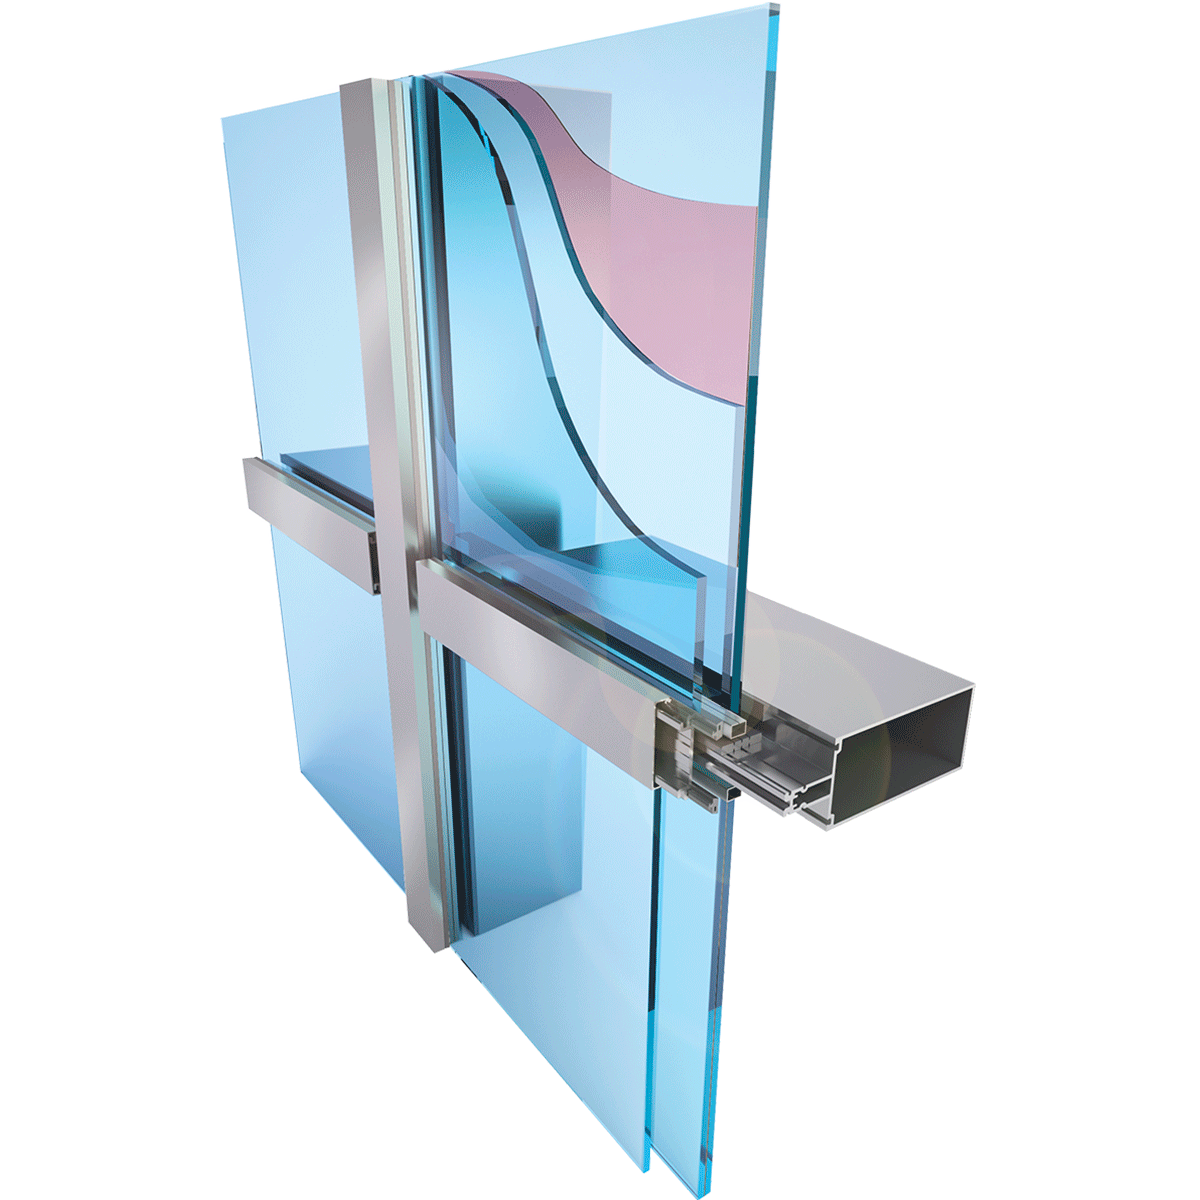 BlastMax Curtain Wall